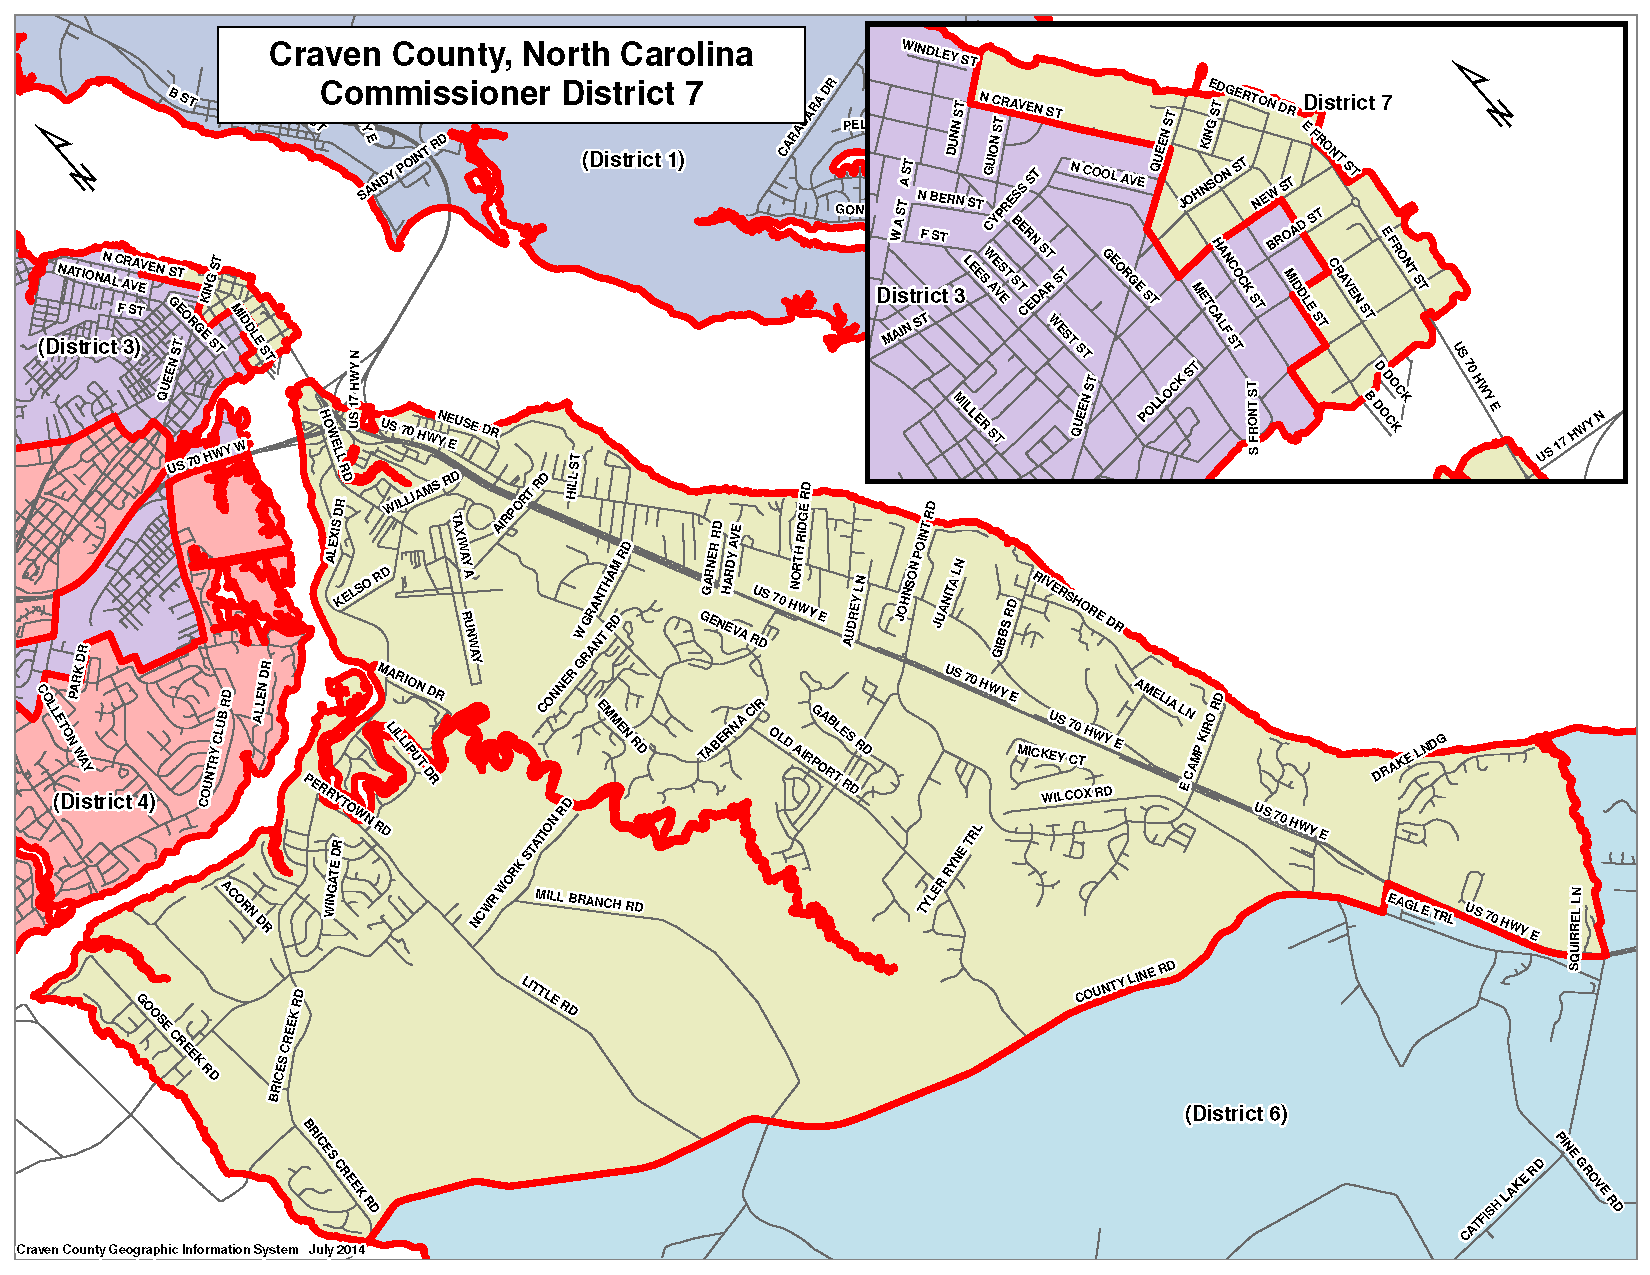 Commissioner District 7 Map